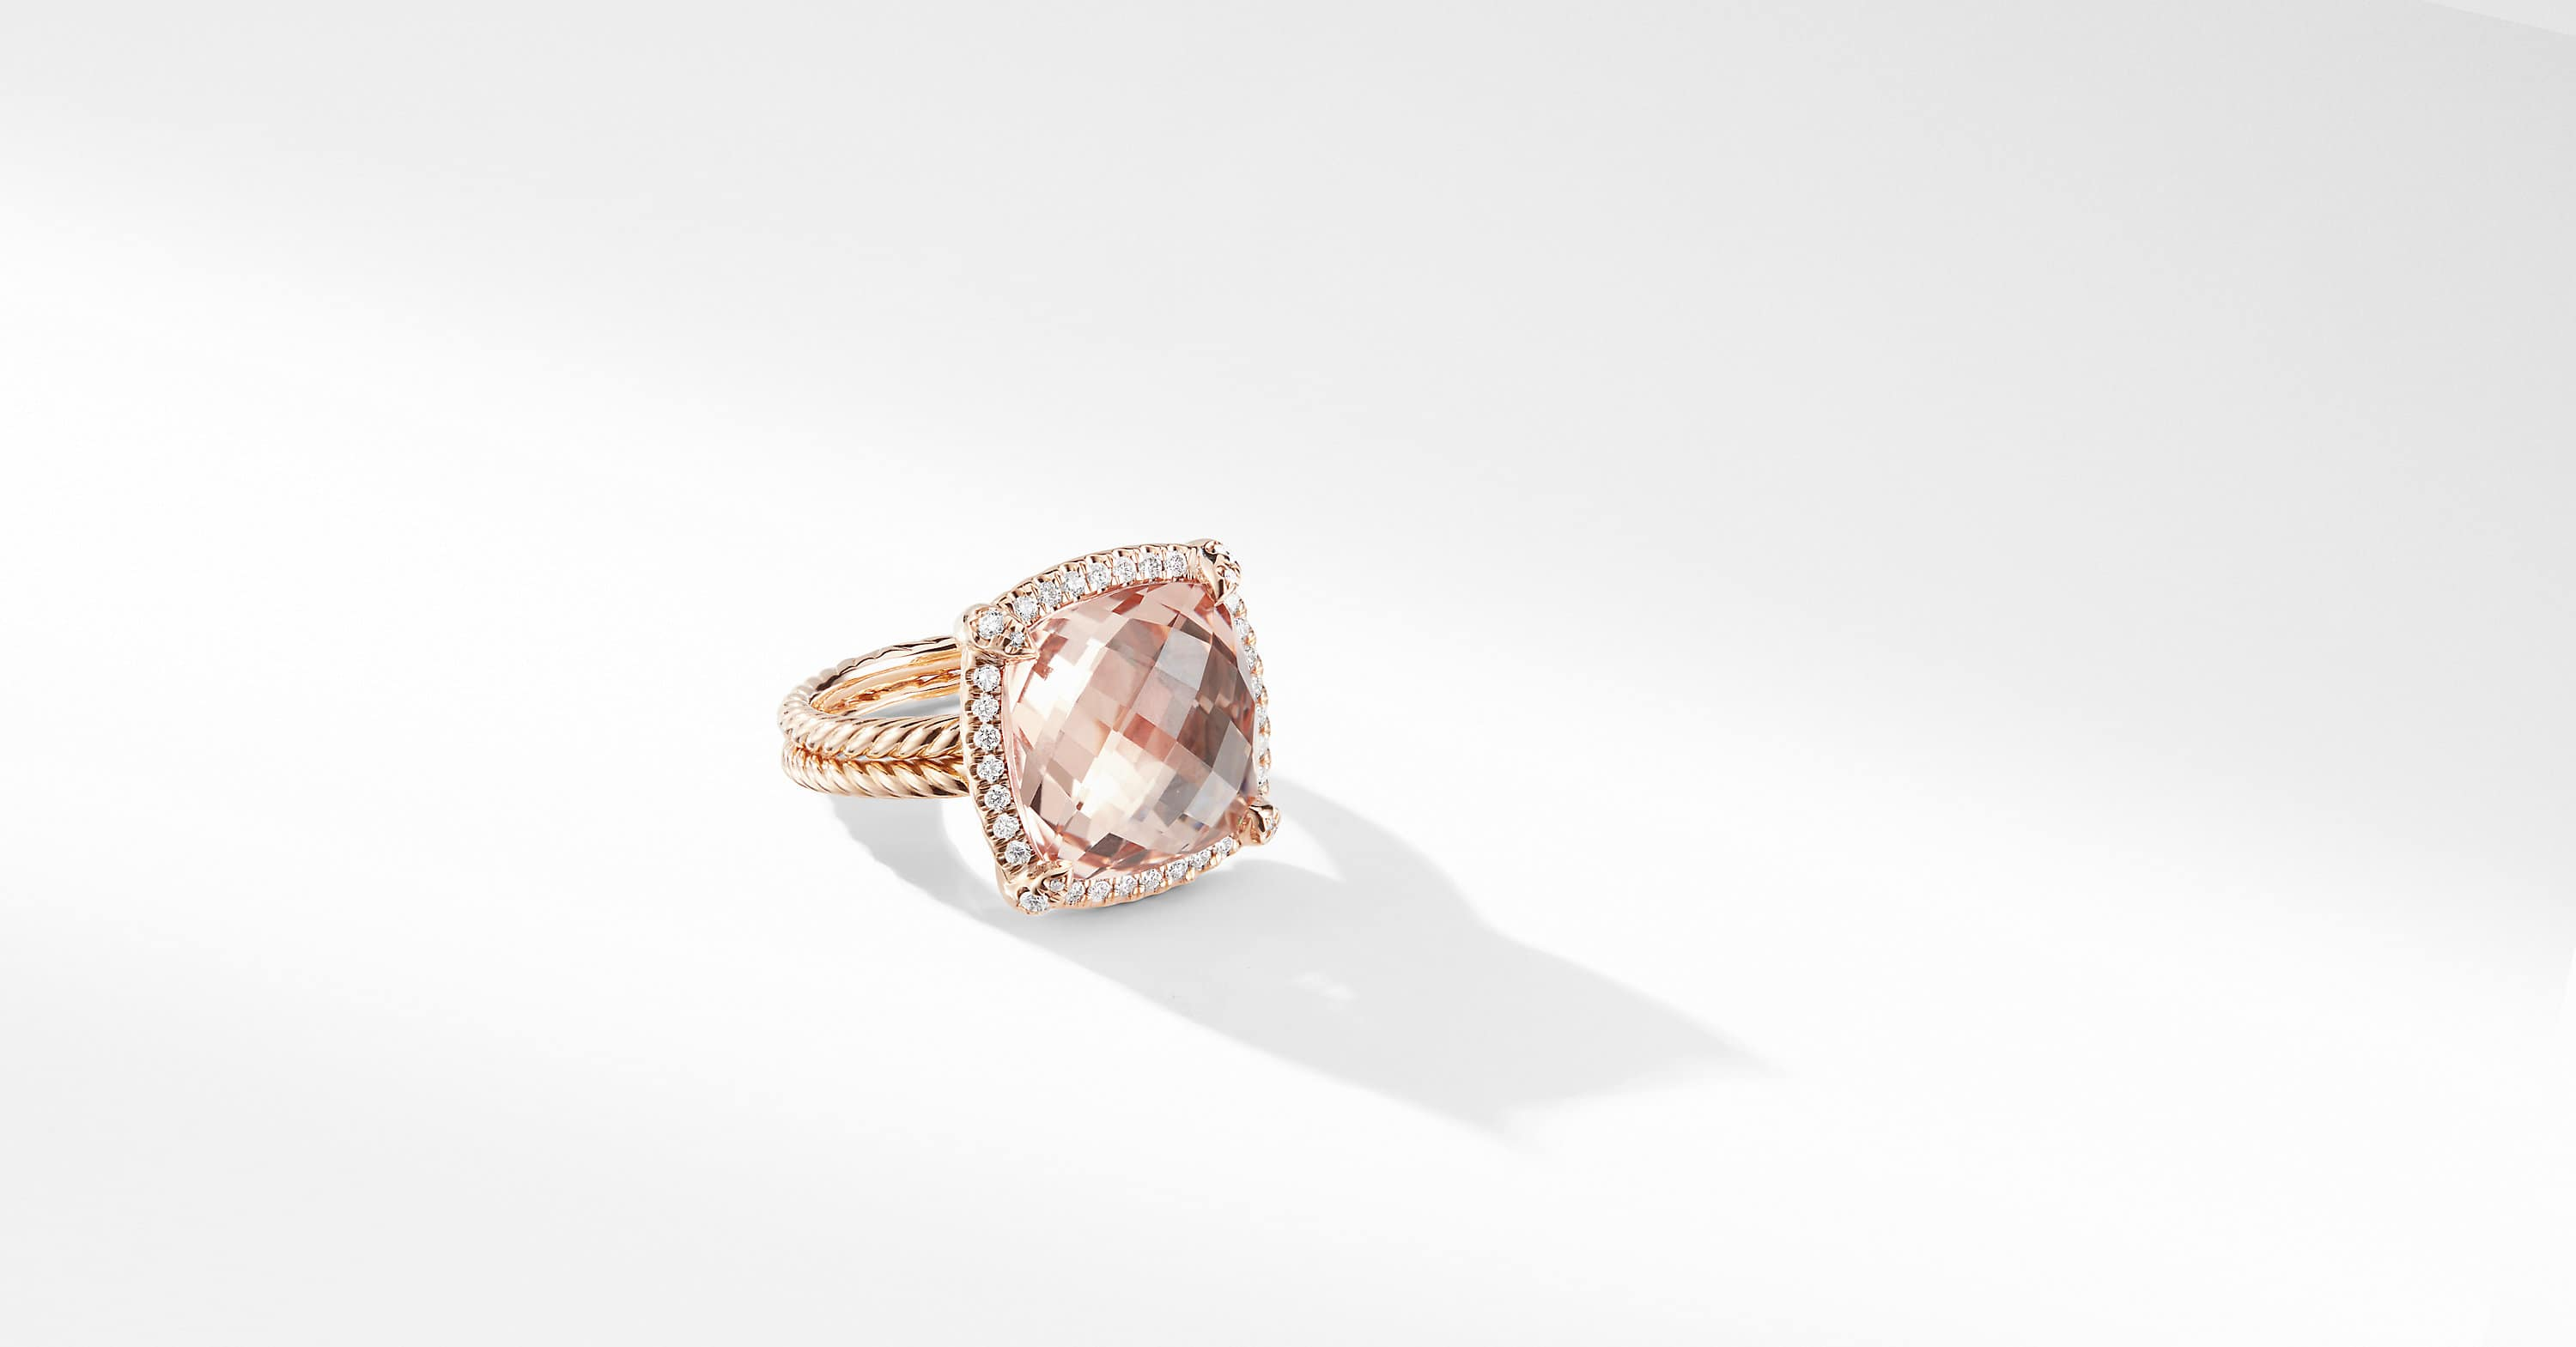 Chatelaine Pave Bezel Ring in 18K Rose Gold, 14mm